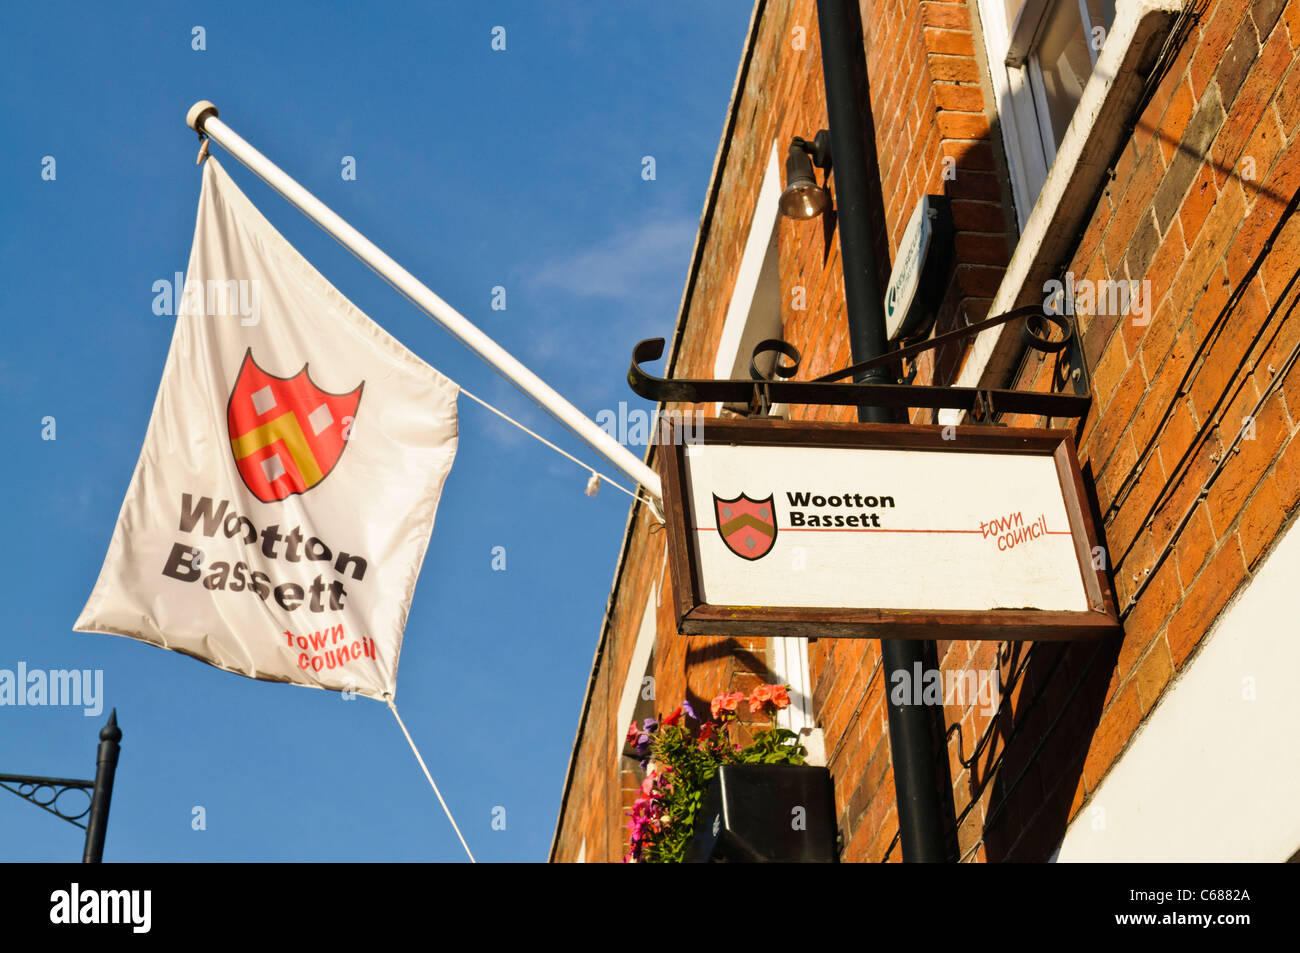 Wotton Basset Town Council flag and sign - Stock Image